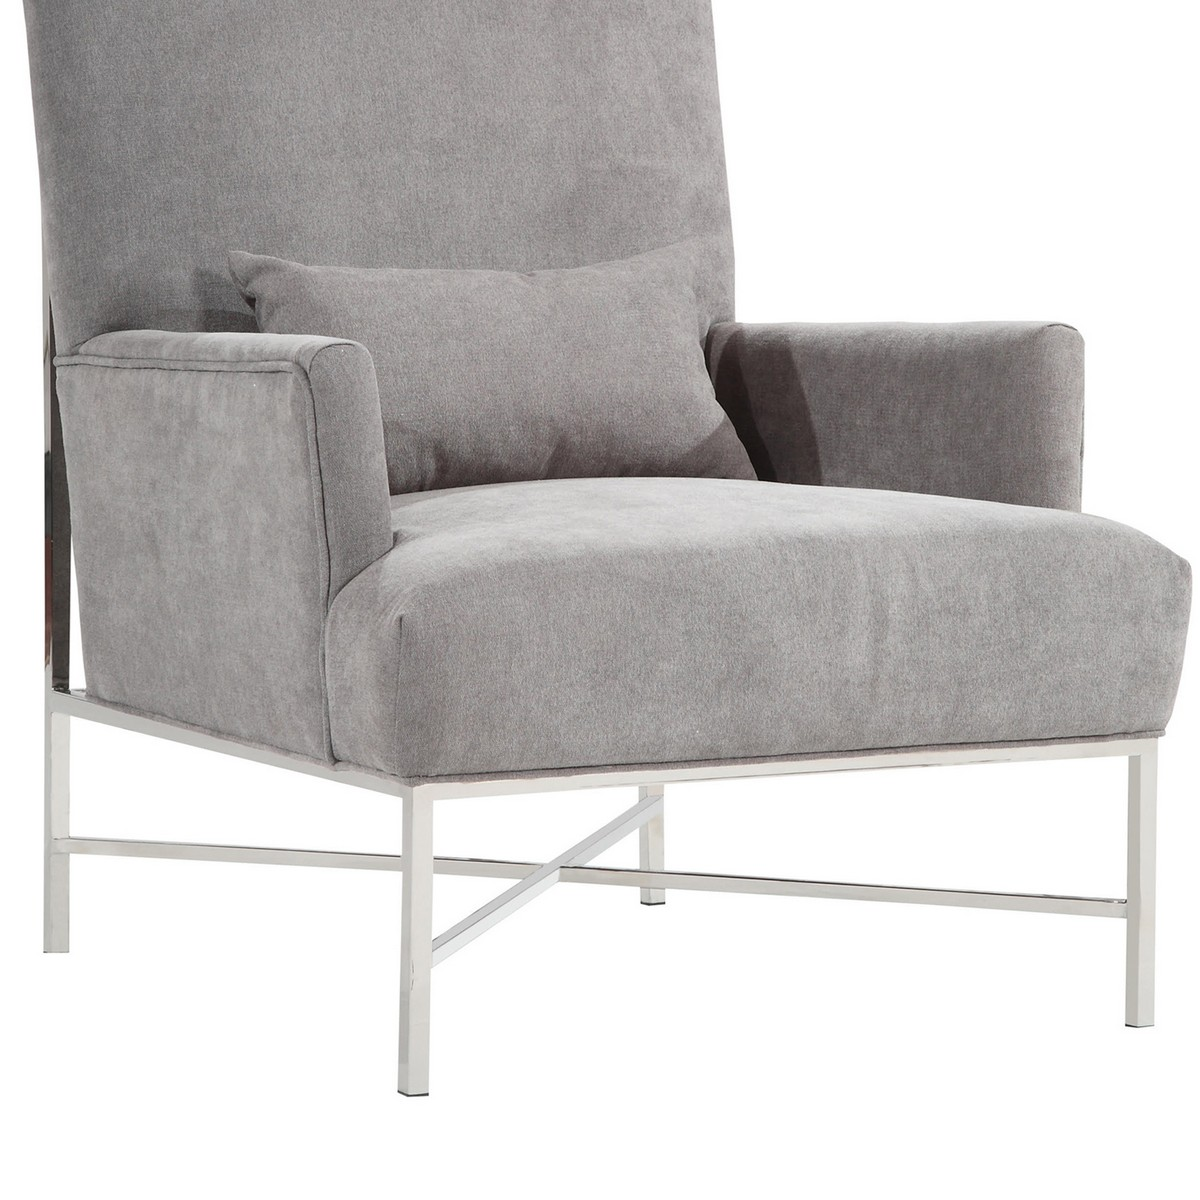 Armen Living York Contemporary Accent Chair In Gray Chenille and Steel Finish